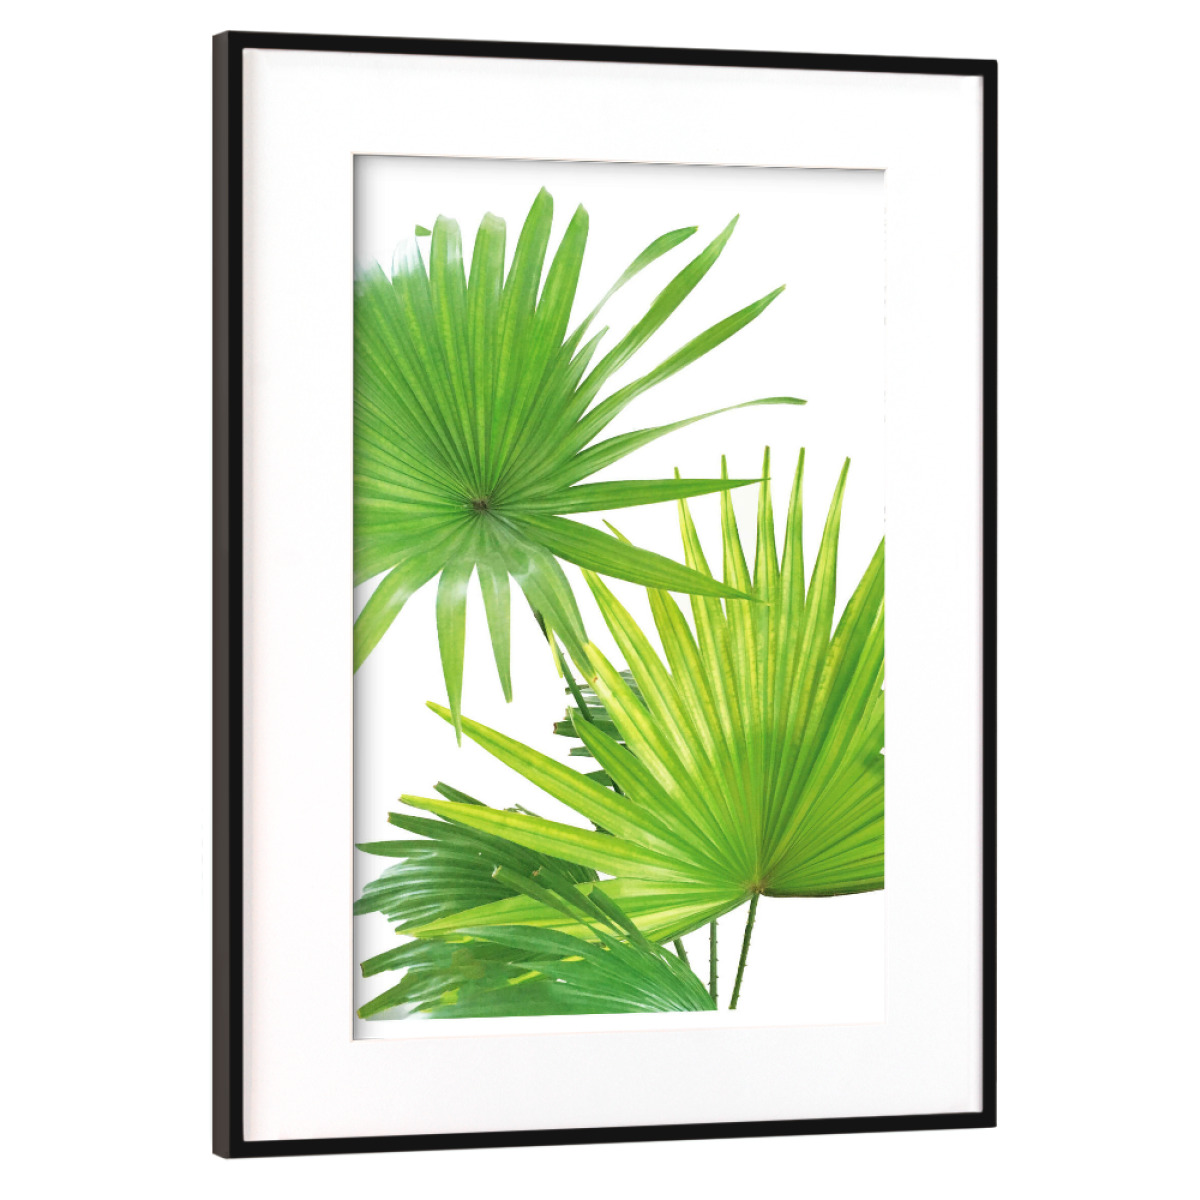 Purchase The Palmenblatter As A Frame At Artboxone